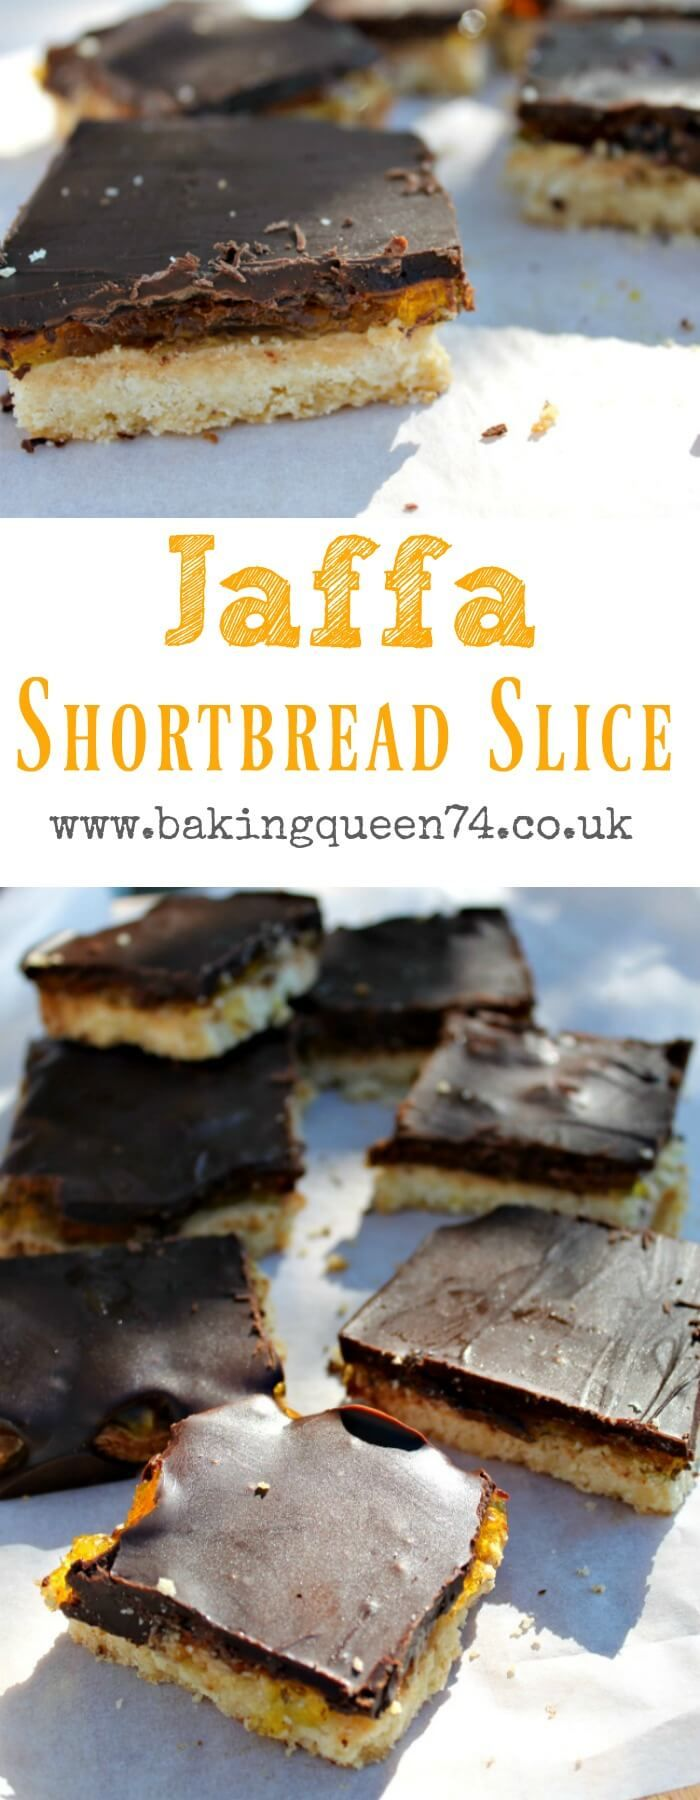 Jaffa Shortbread Slice - shortbread, orange jelly (jello) and chocolate layered together, easy to make and great for a quick treat